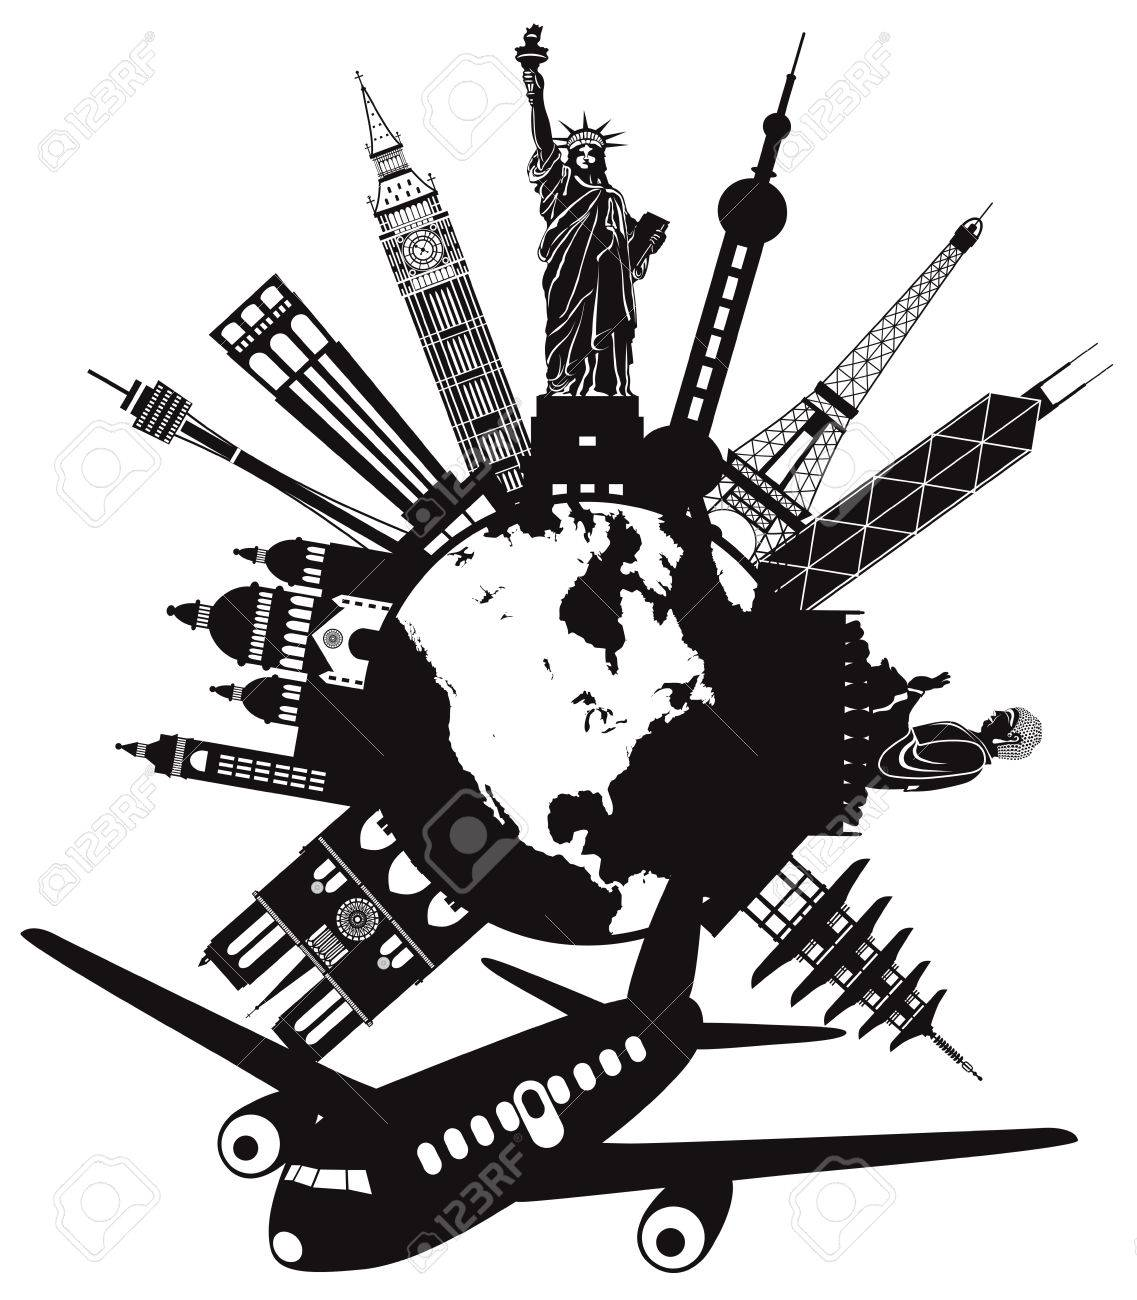 Travel Around The World By Airplane With Landmarks On Round Globe Black And White Illustration Stock